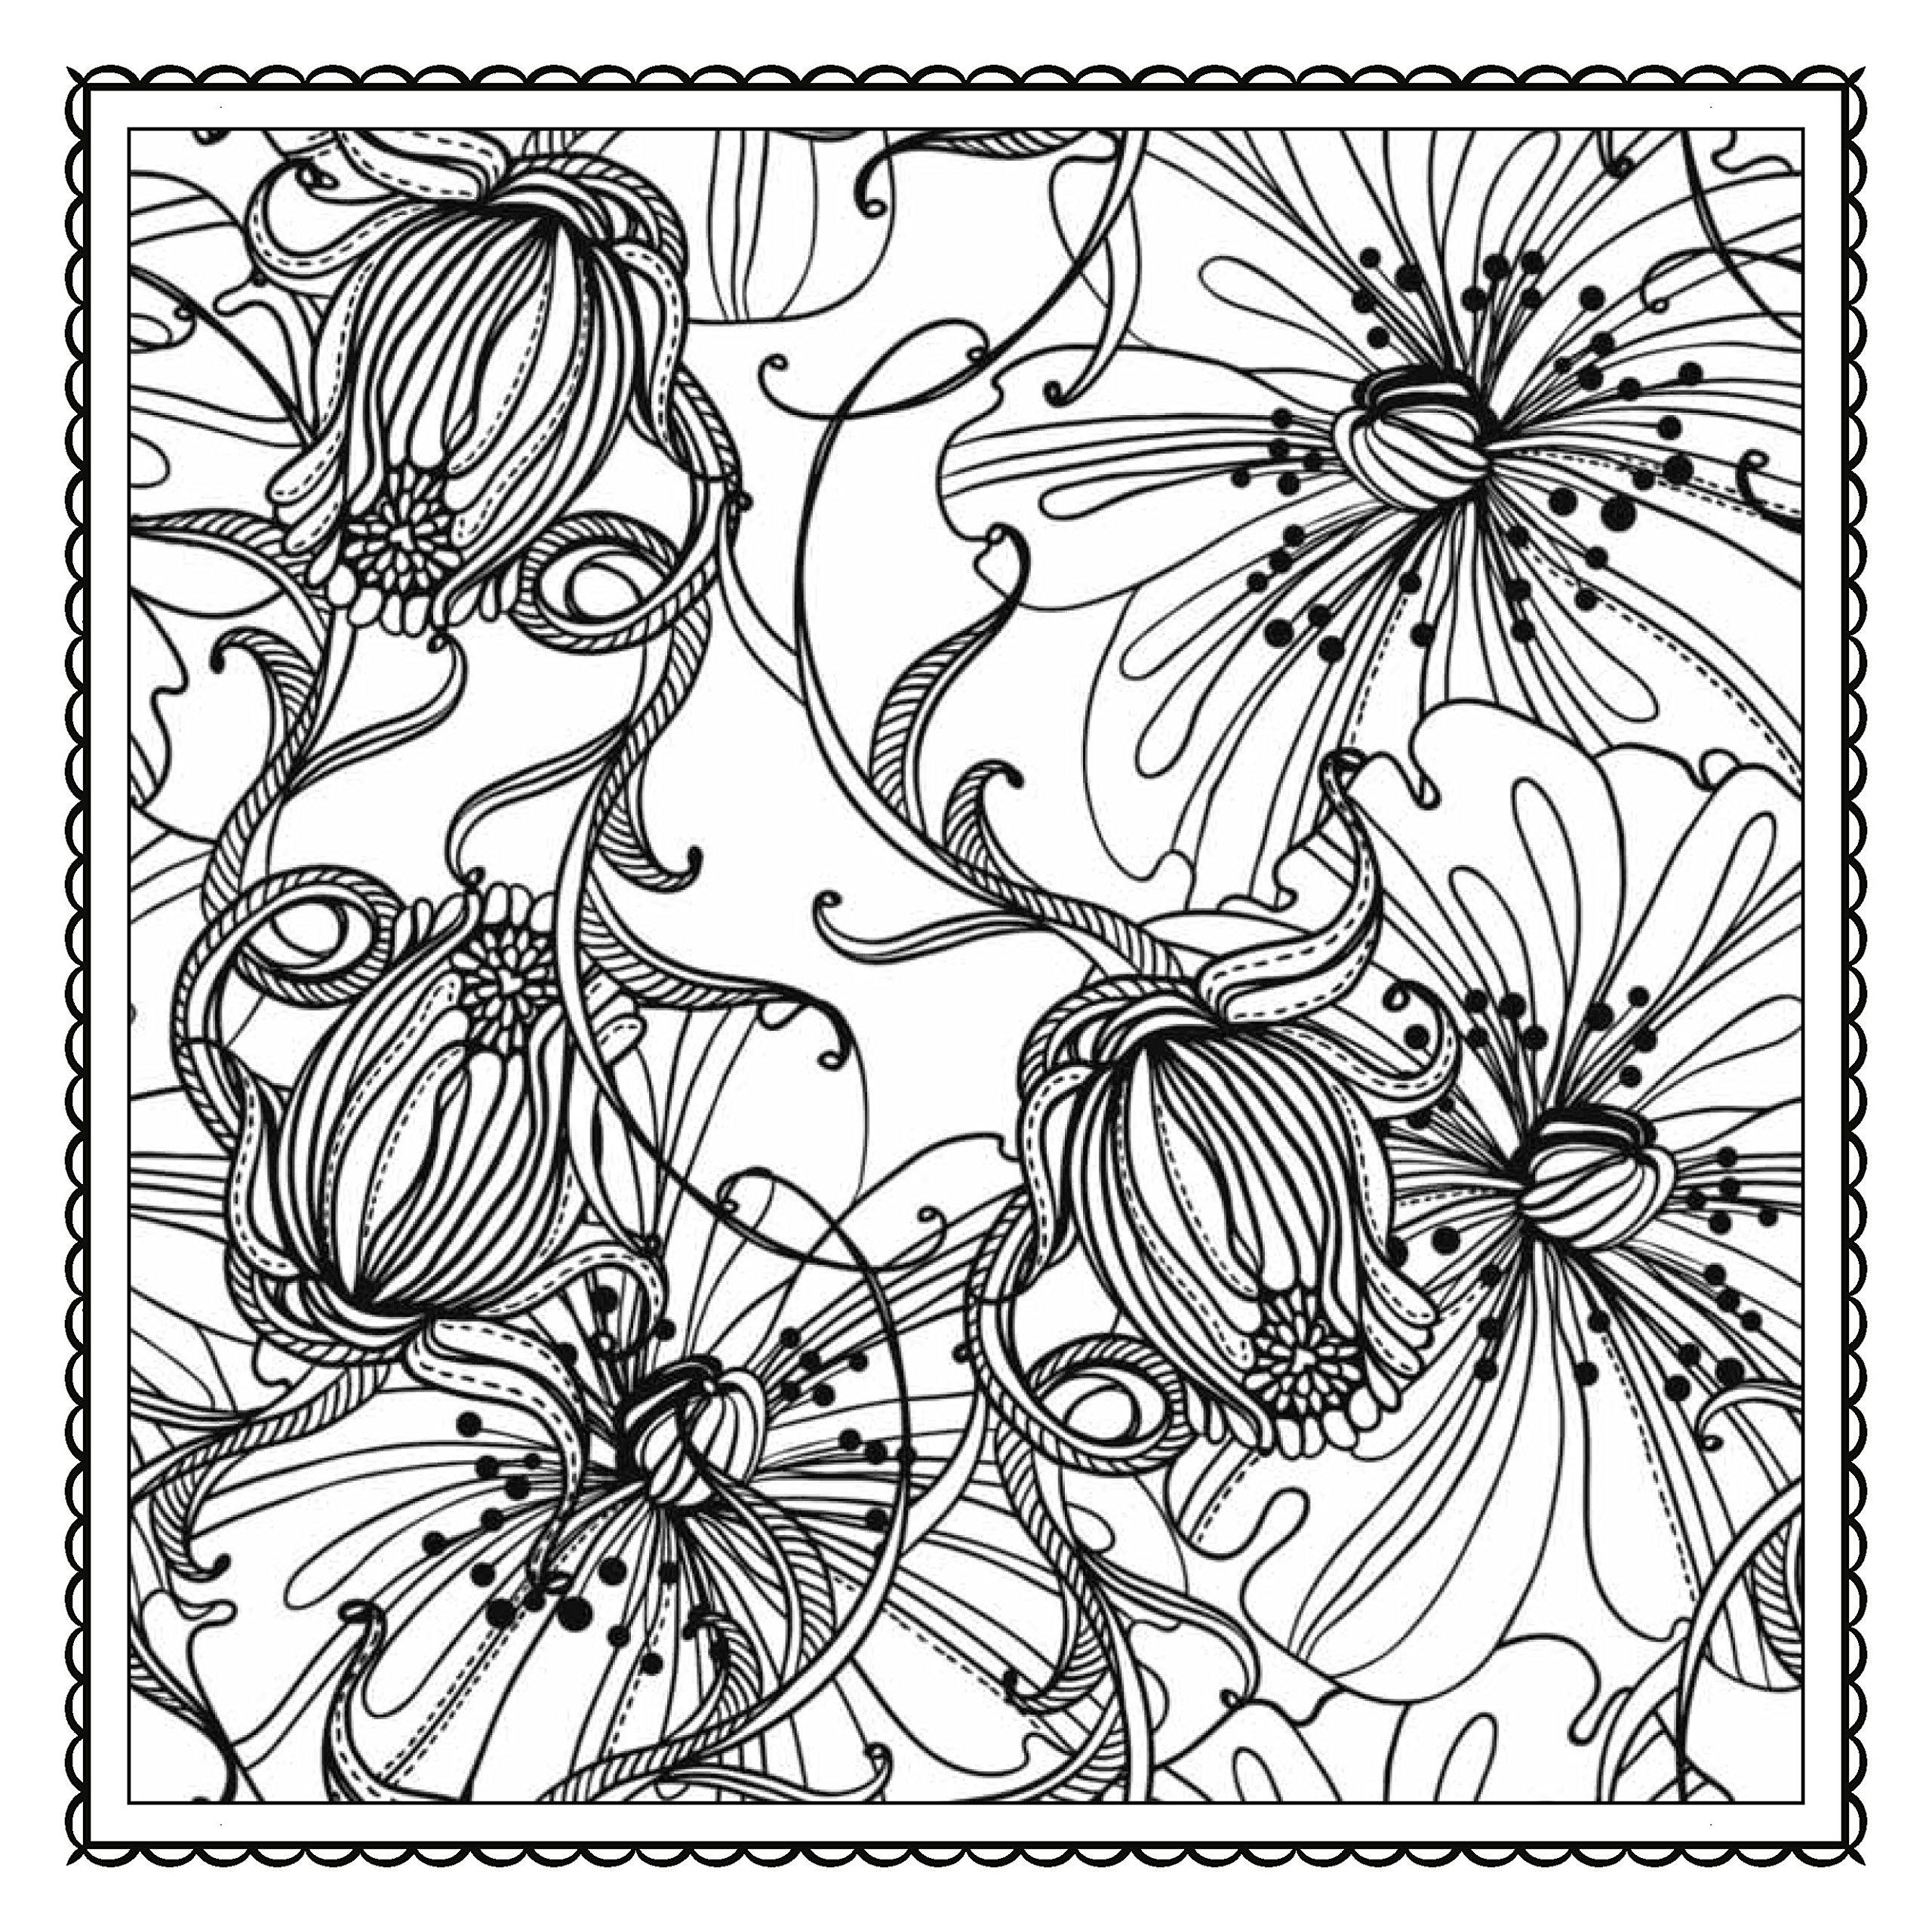 Colouring in pictures of flowers - Magic Garden Fantastic Flowers Coloring Book For Adults Color Magic Arsedition 0027011406393 Amazon Com Books